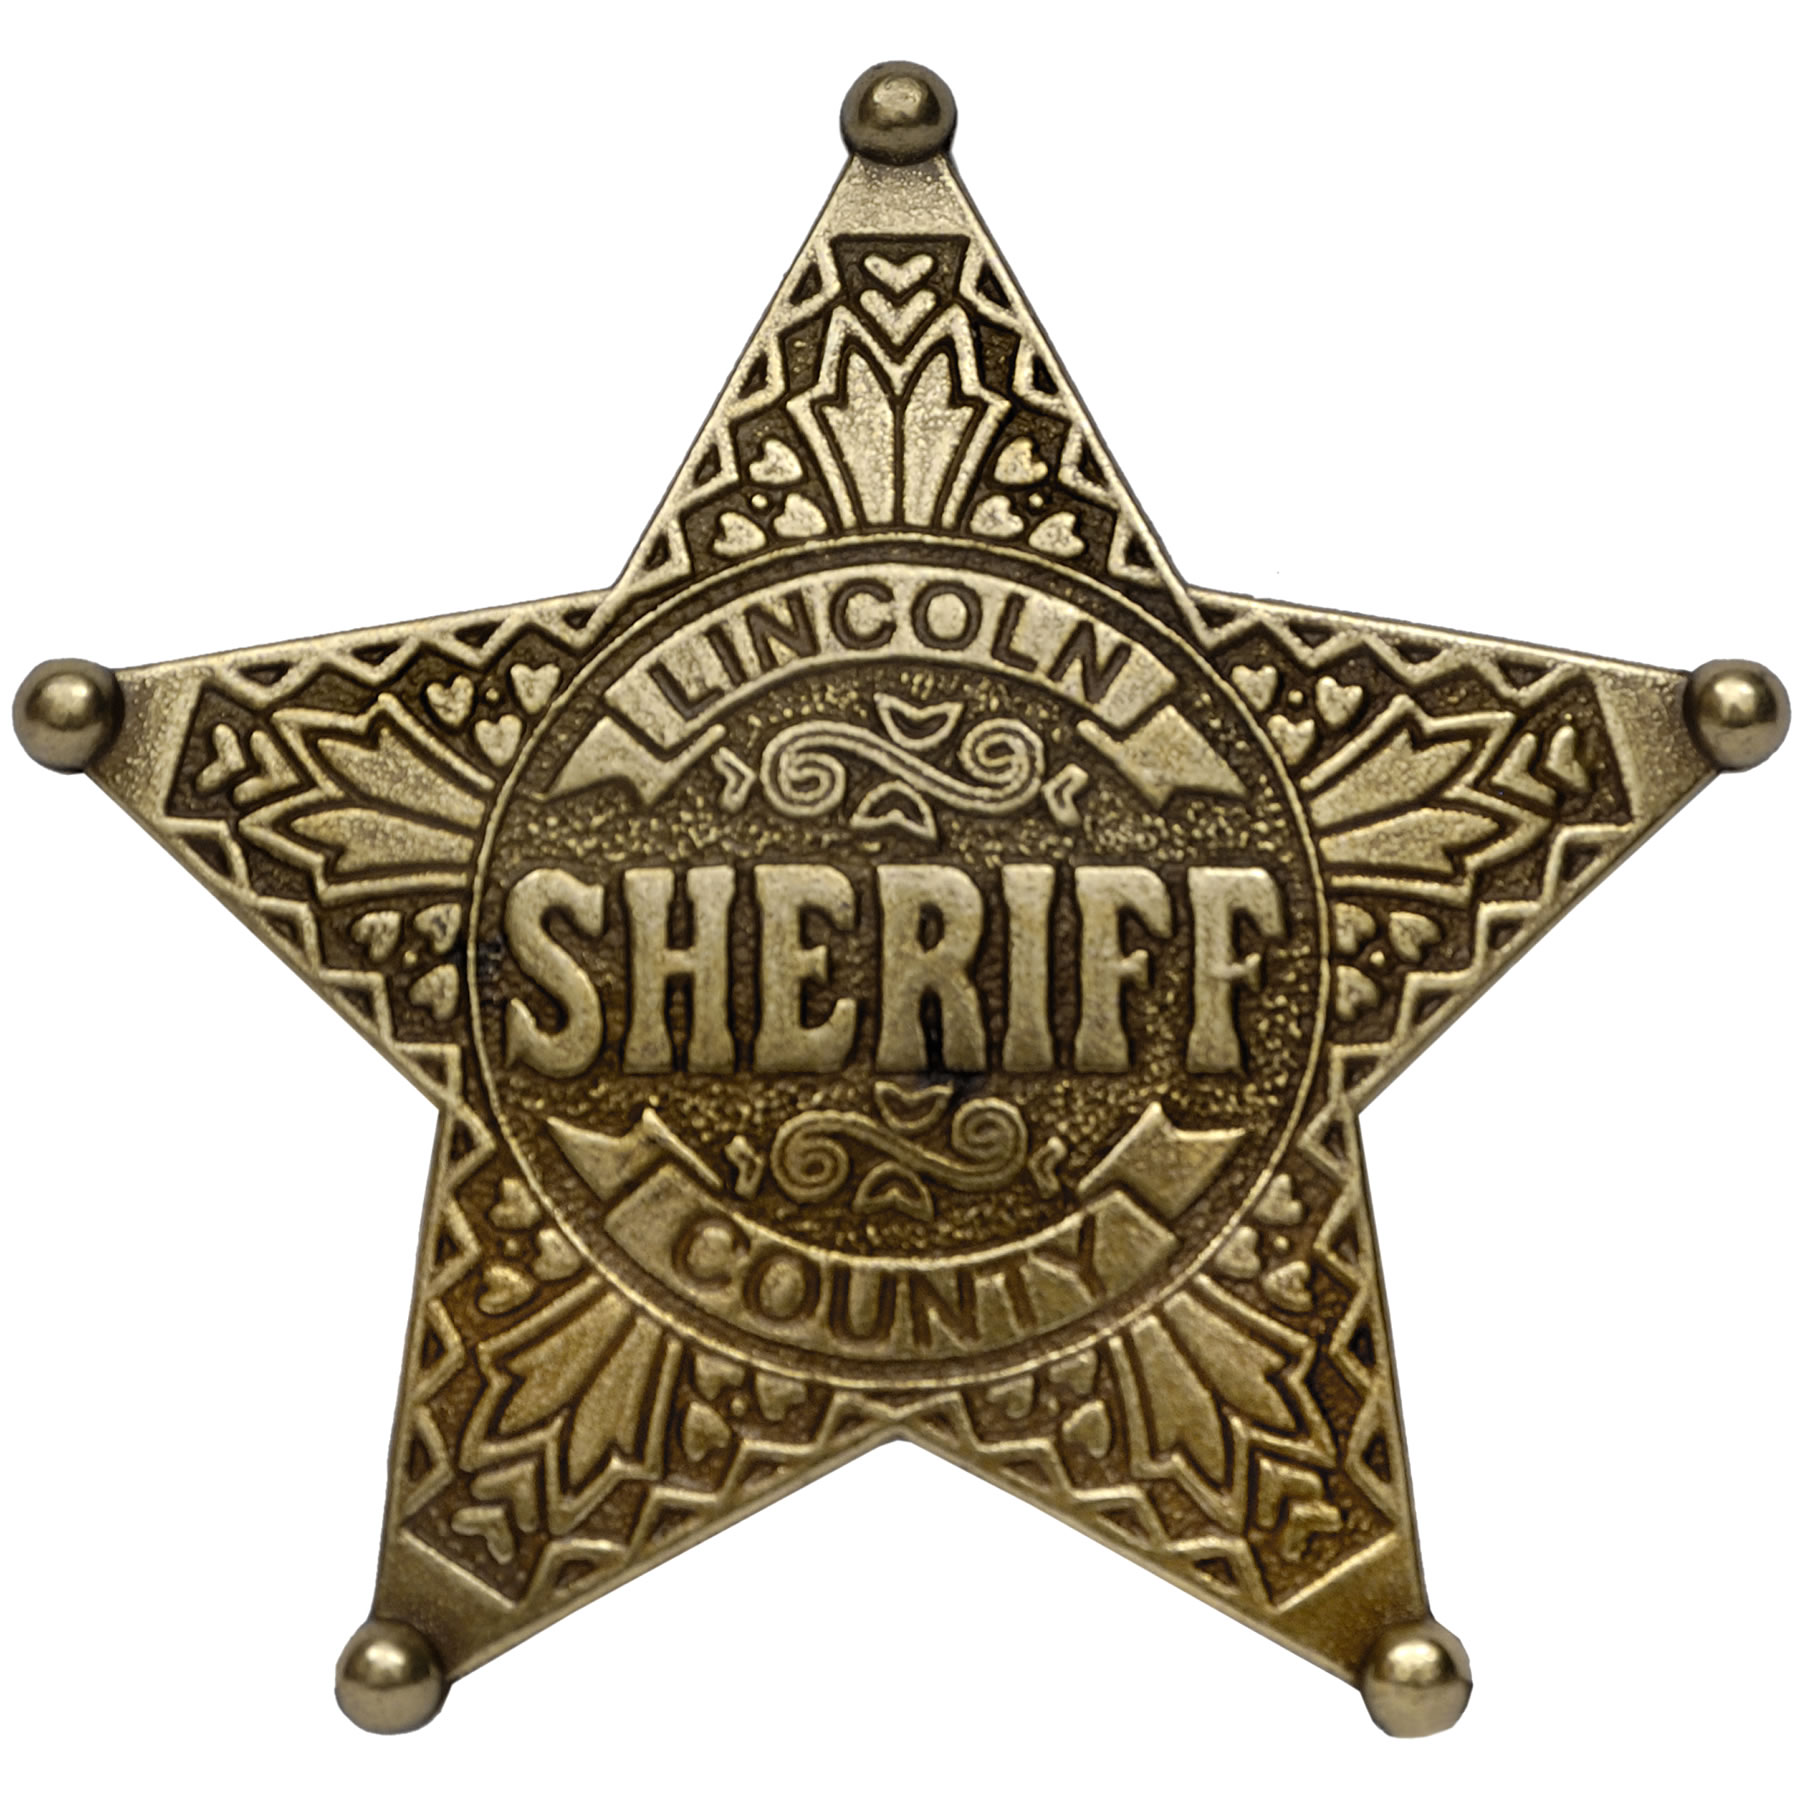 Sheriff Star Five point ball tipped star